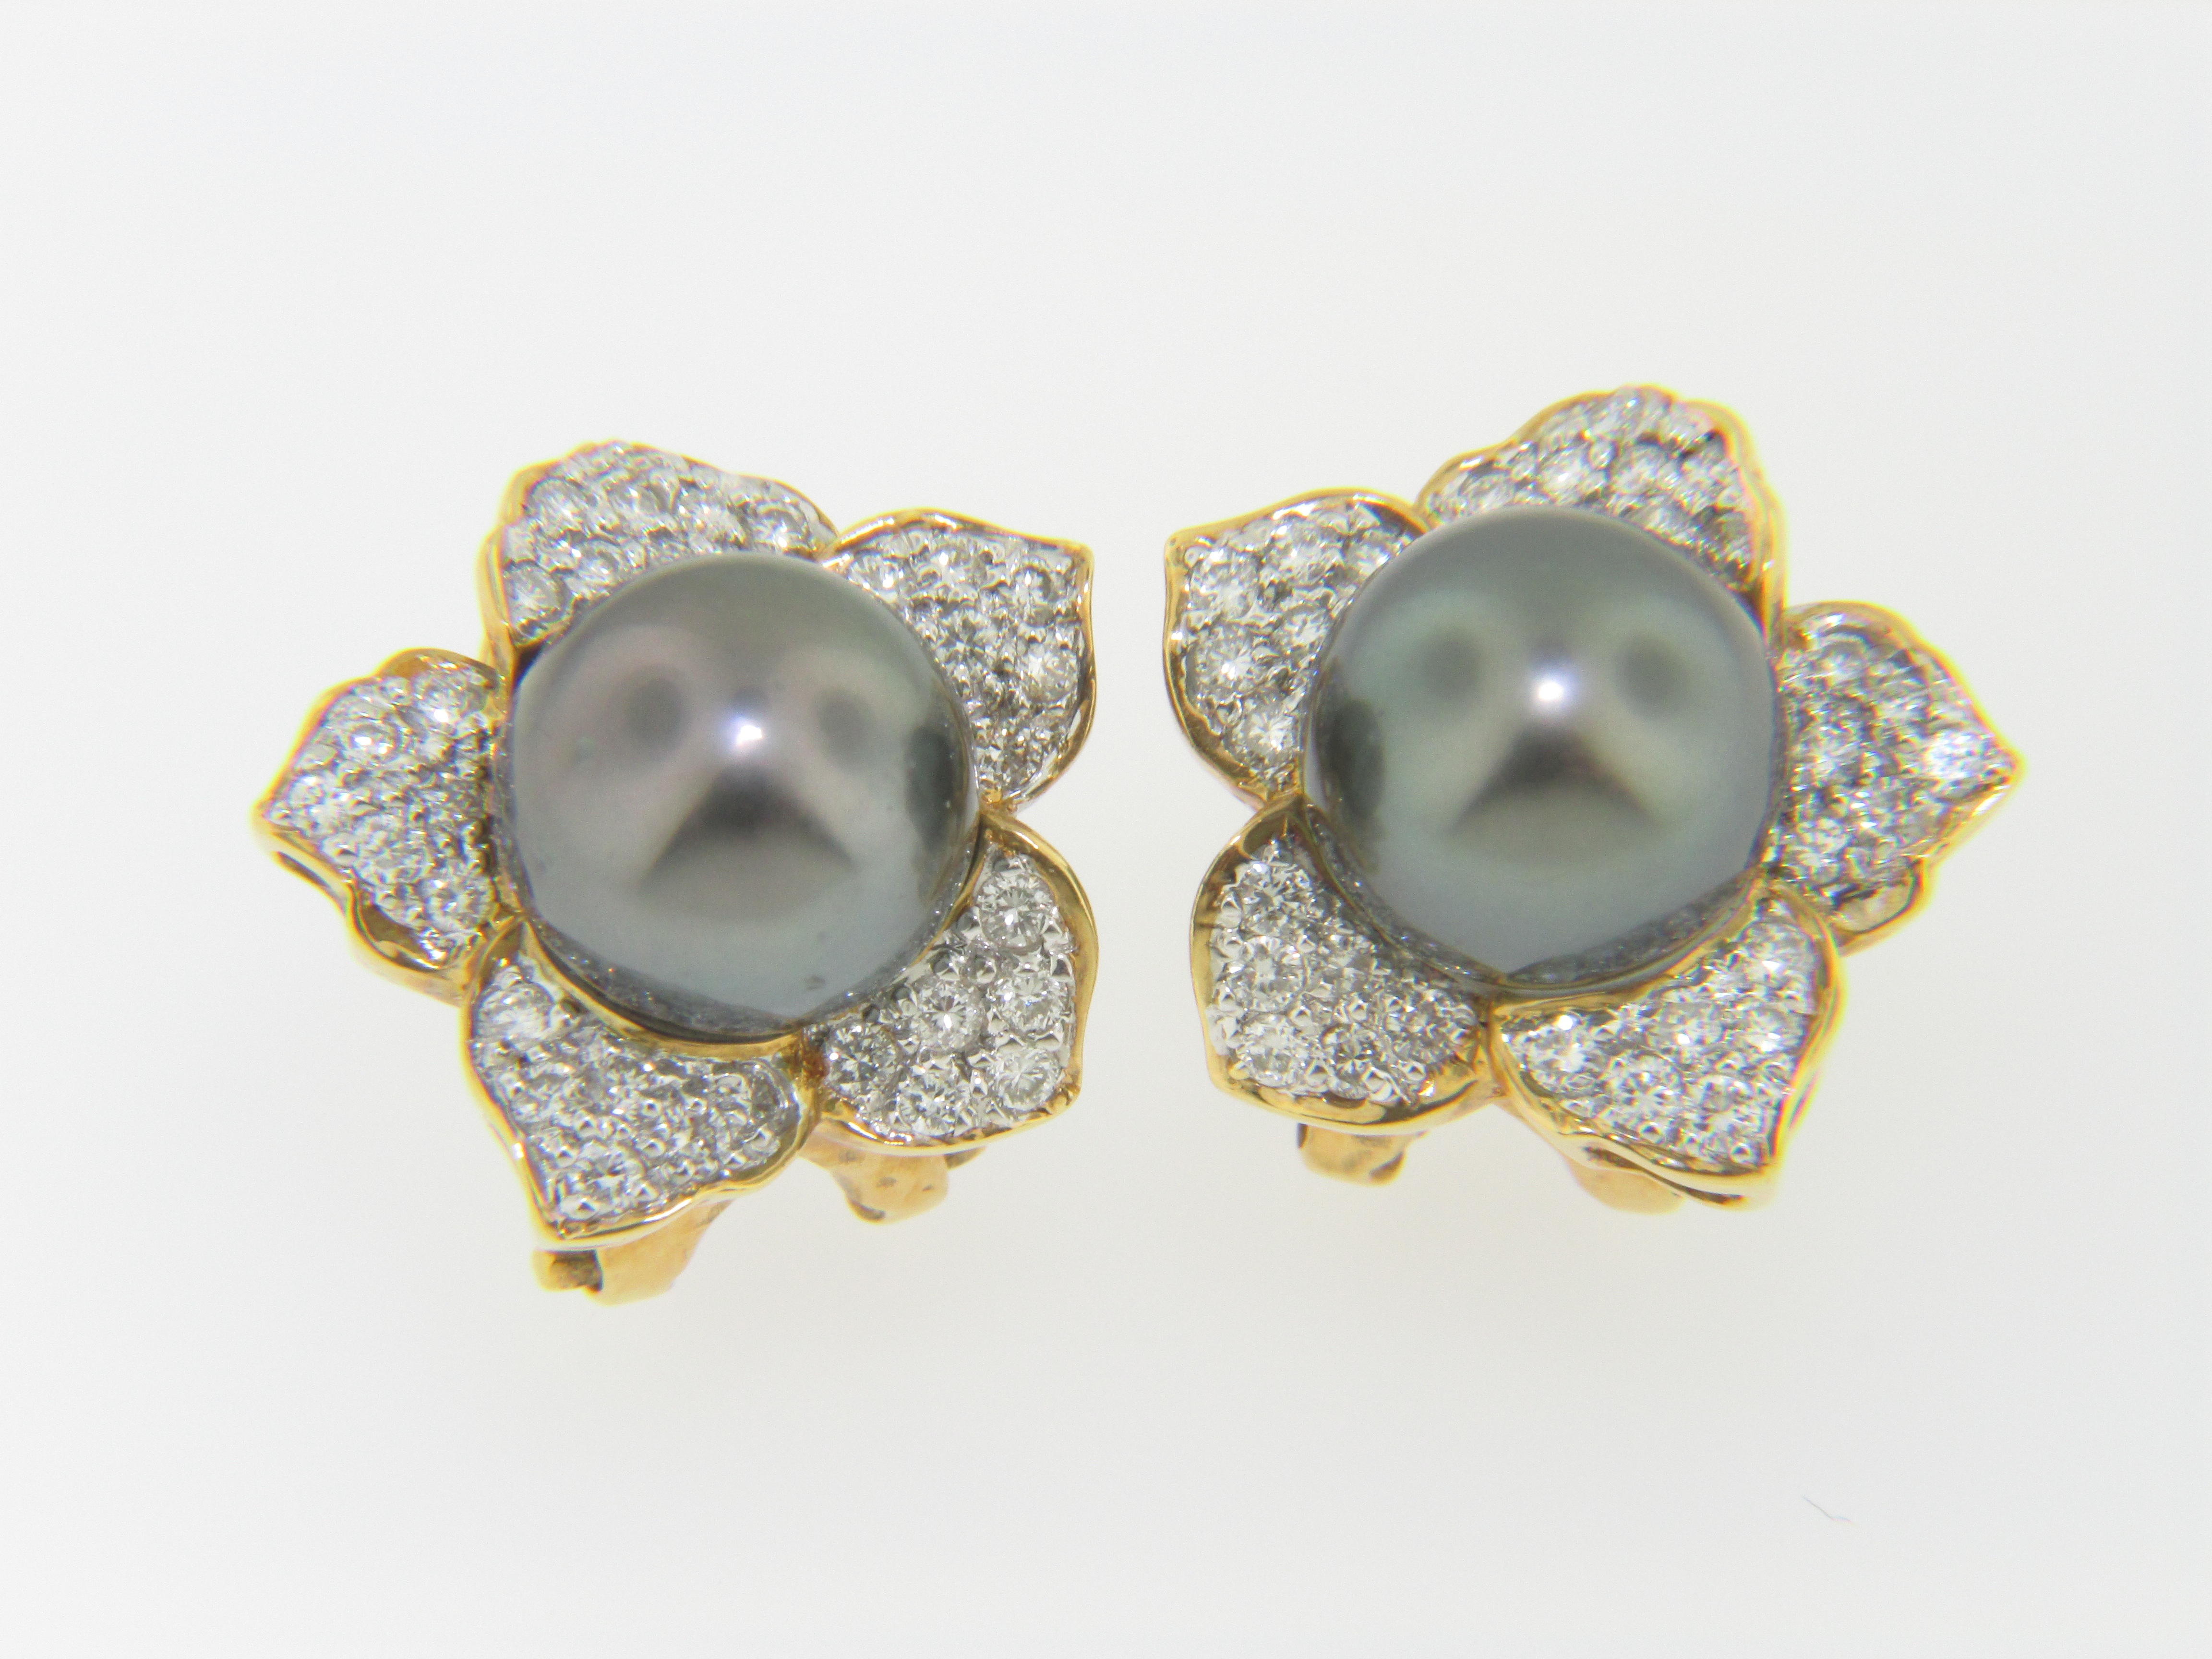 This Is A Pair Of Timeless 875mm South Sea Pearl & Diamond Flower Design Stud  Earrings In 18k Yellow Gold The Pair Weighs 78 Grams